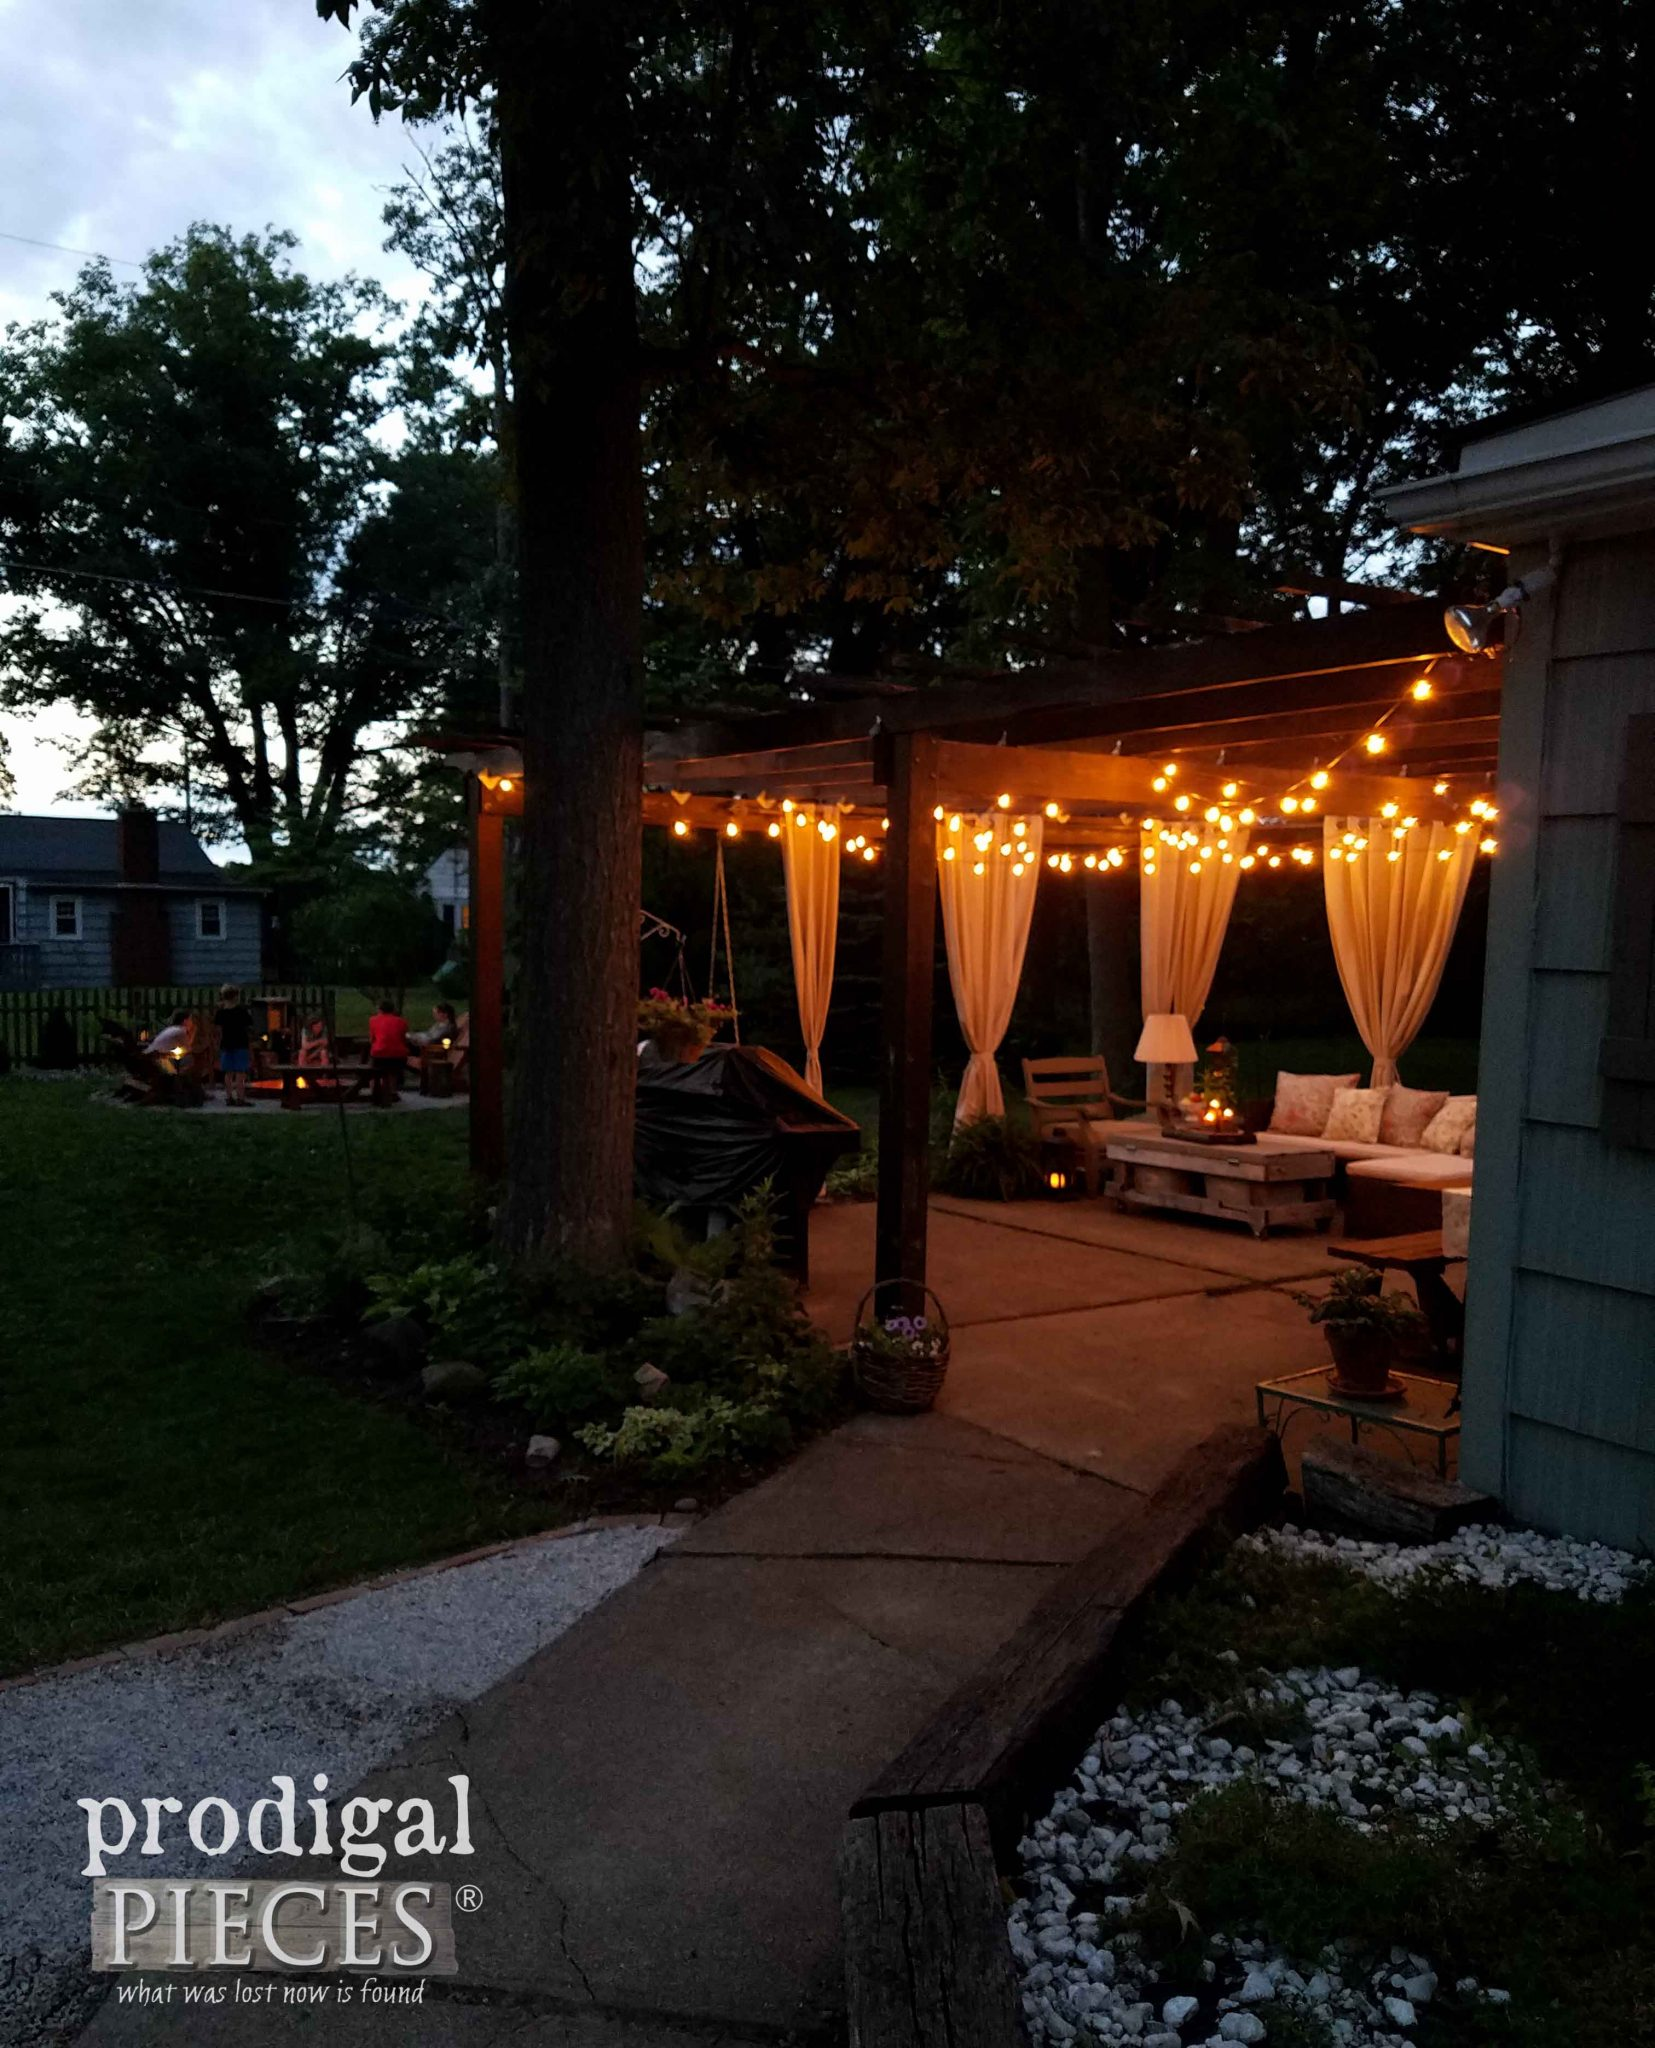 Patio with Nighttime Lights and DIY Fire Pit by Prodigal Pieces | prodigalpieces.com